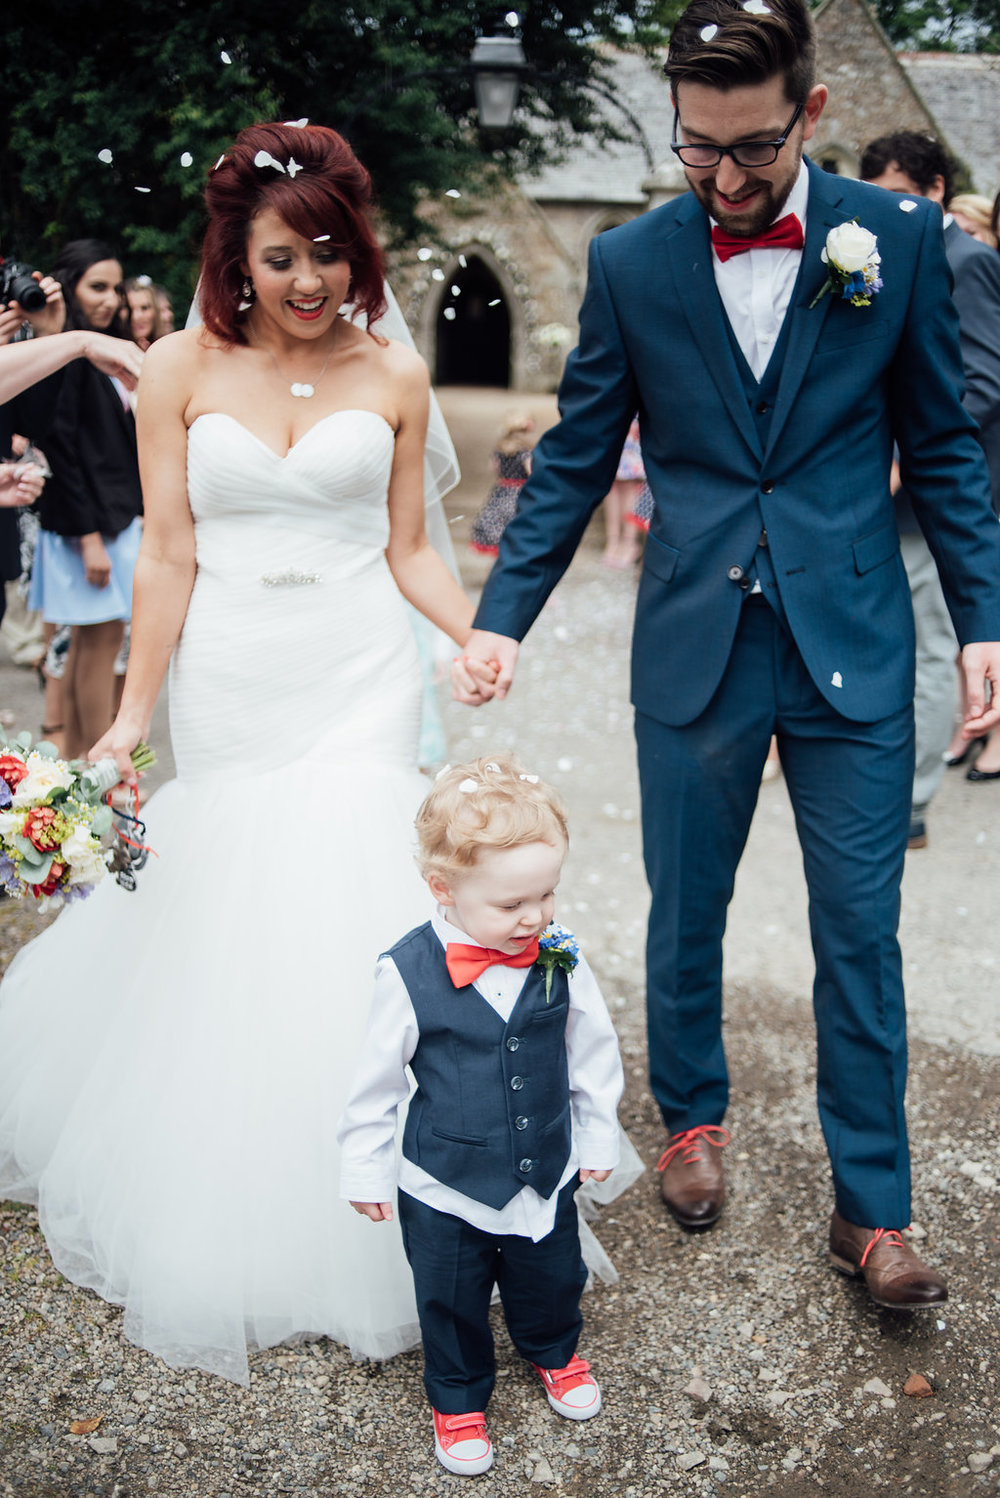 liberty-pearl-photography-cornwall-wedding-porthleven-wedding-red-and-blue-wedding-colour-palette-67